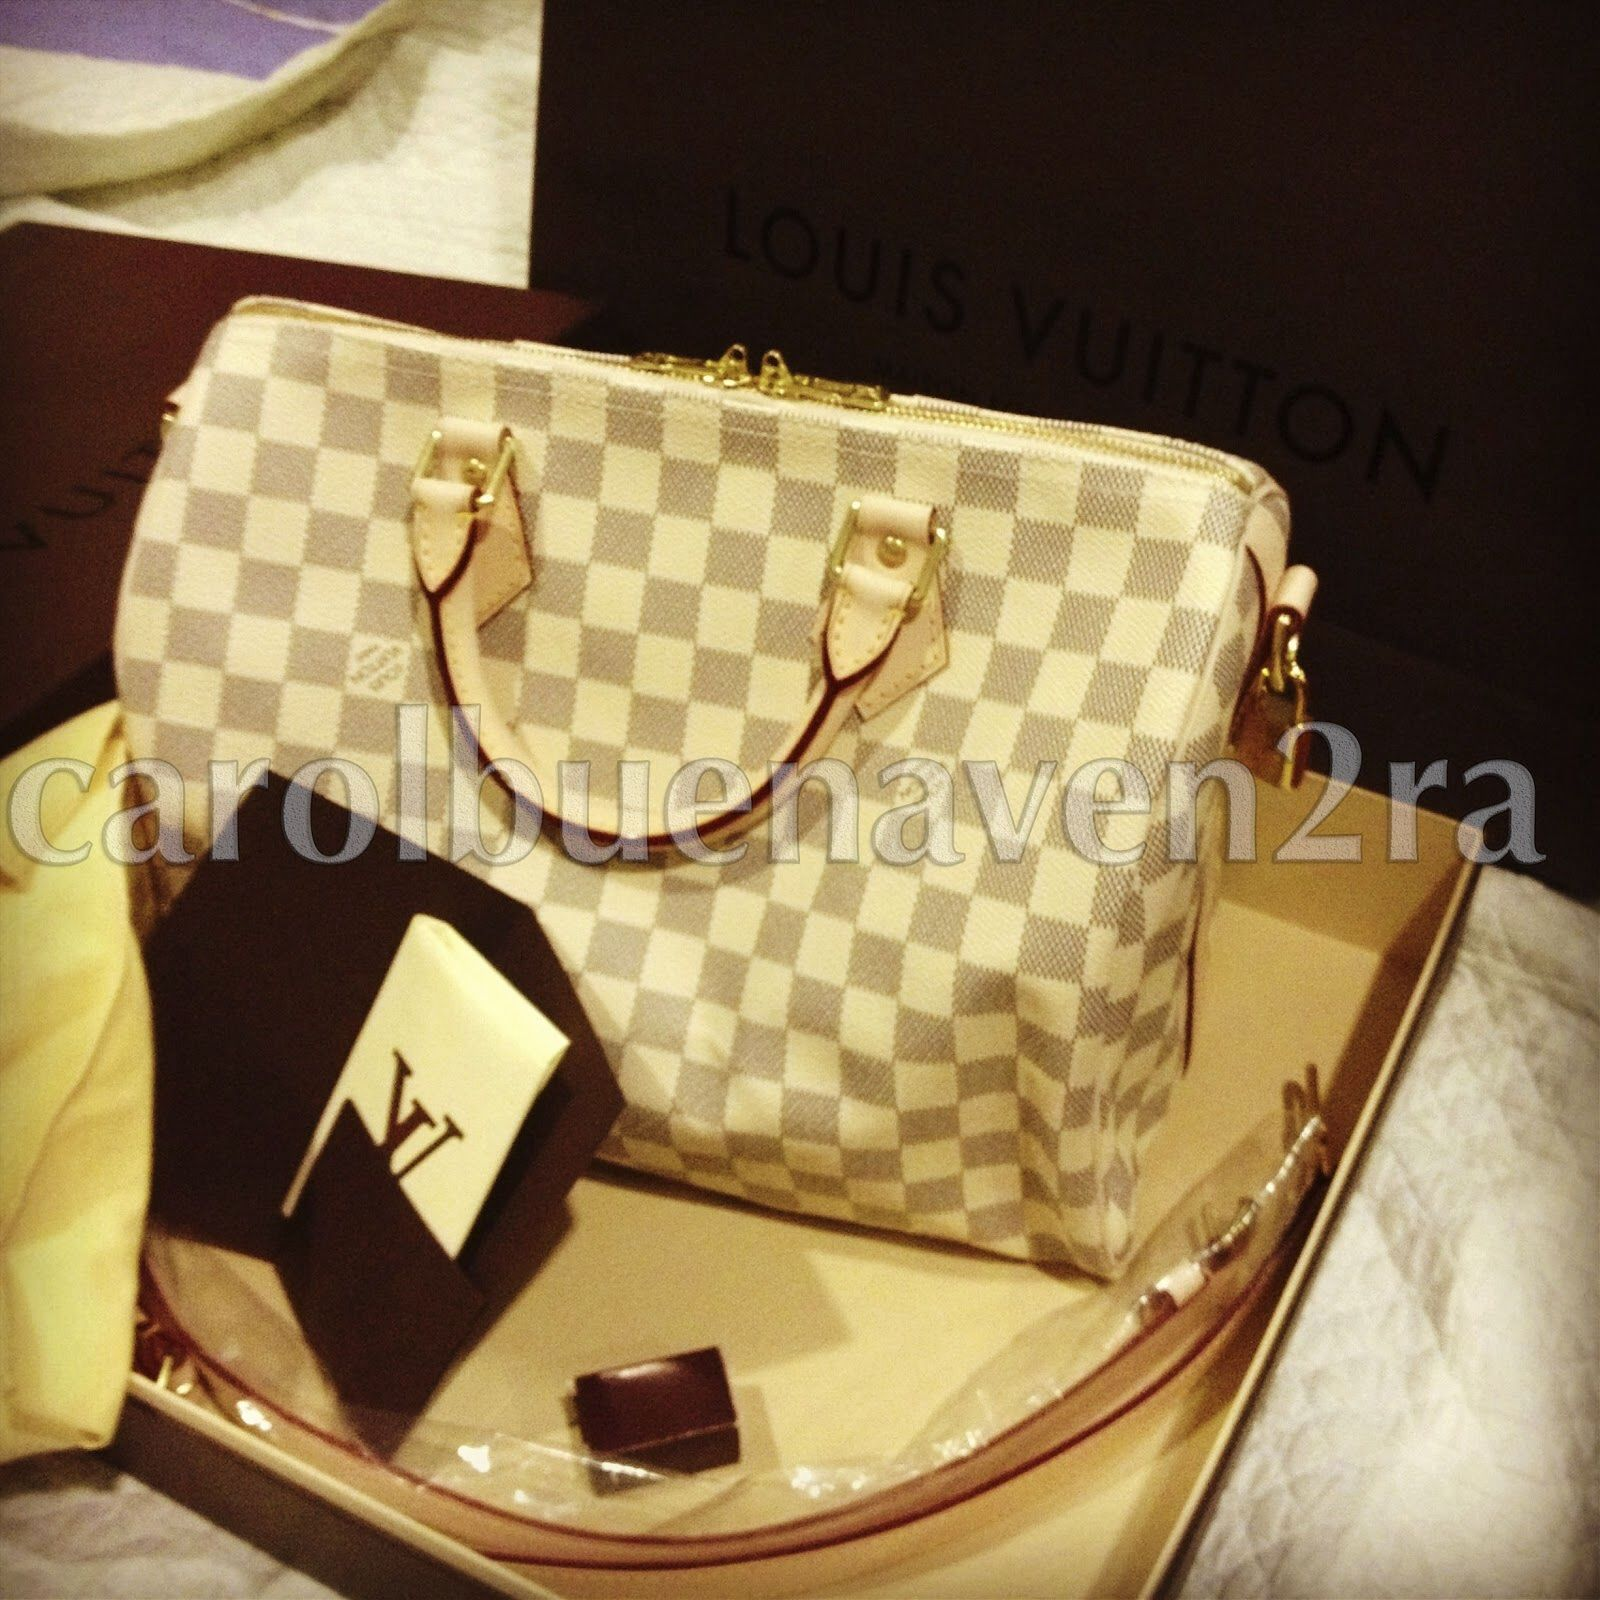 Hermes Bag Cost In The Philippines